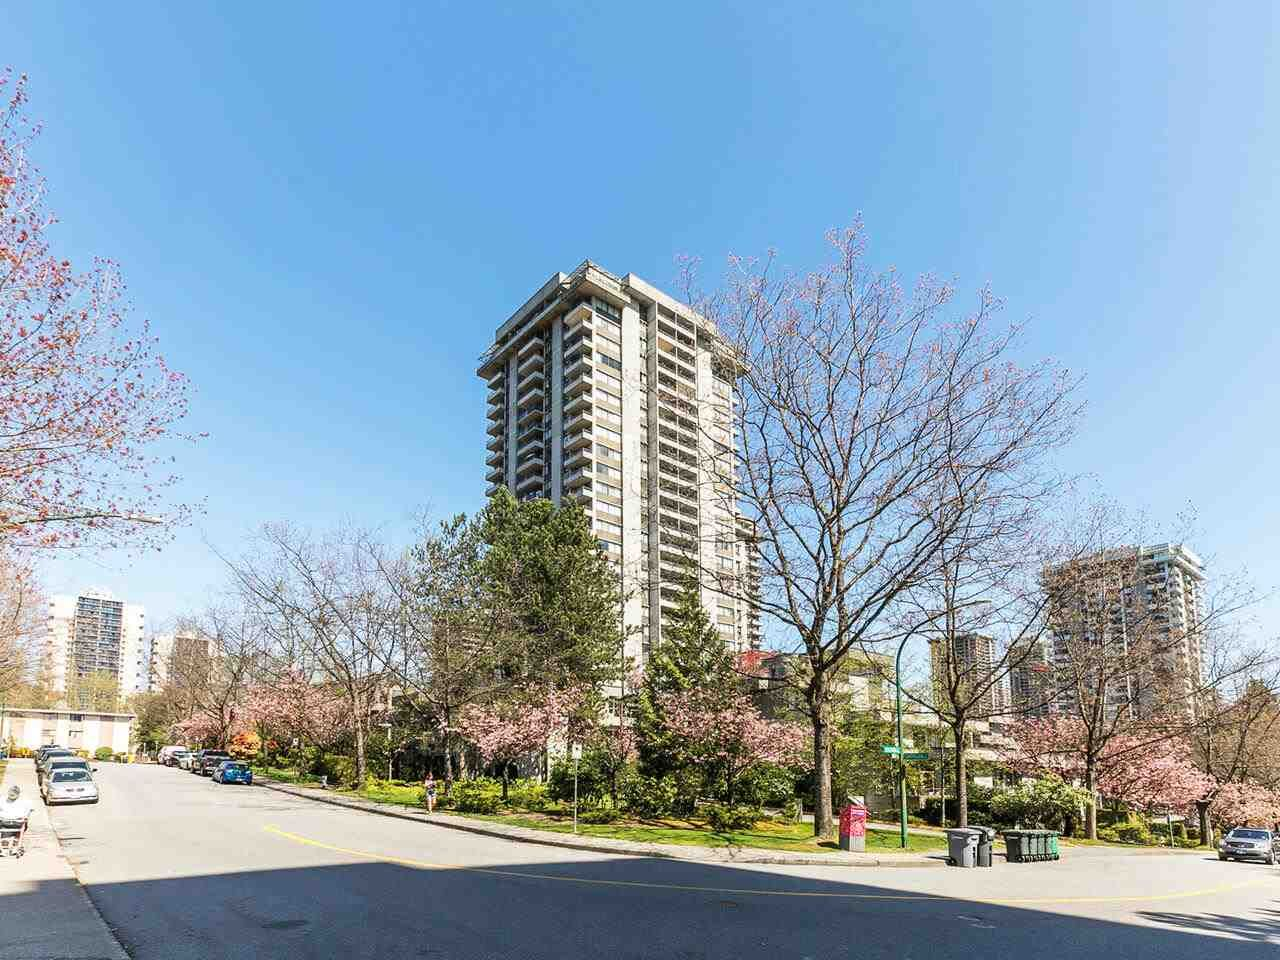 Main Photo: 1406 3980 CARRIGAN Court in Burnaby: Government Road Condo for sale (Burnaby North)  : MLS®# R2571360